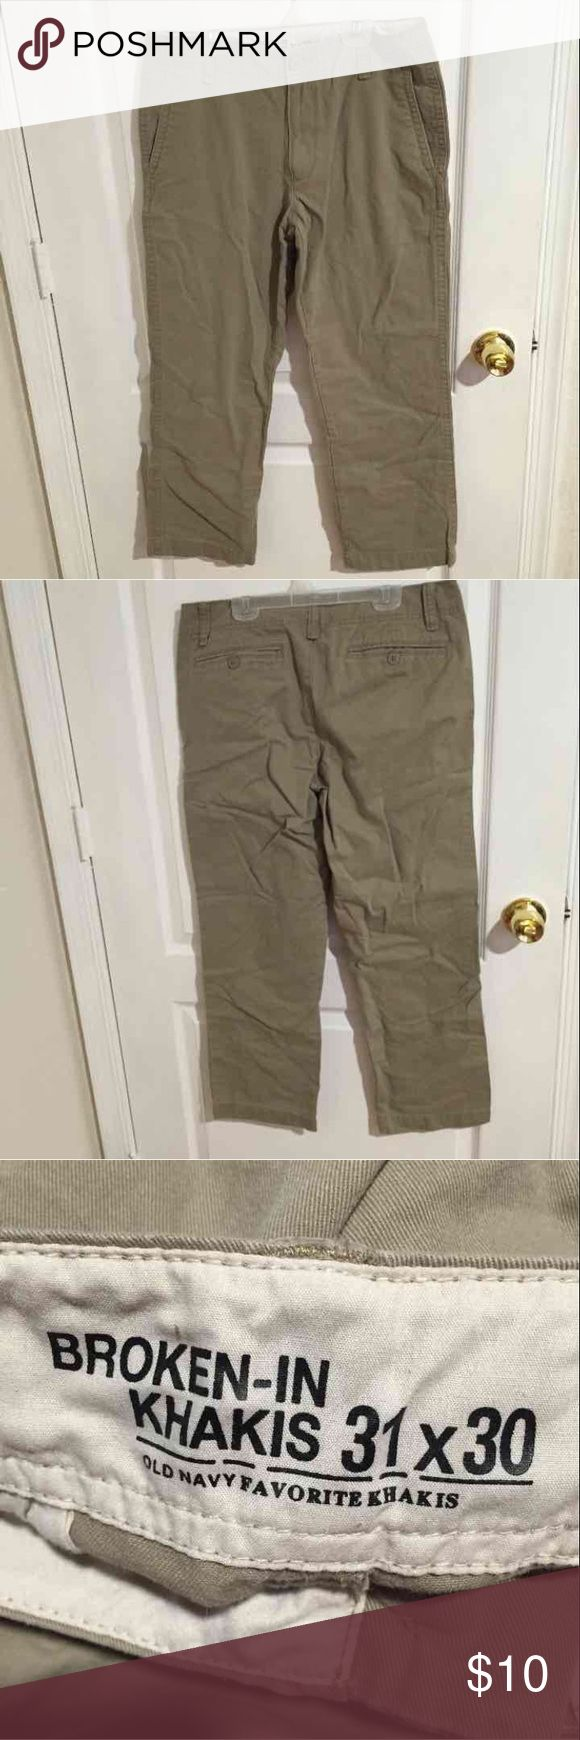 Old Navy Men's Khaki Pant Size 31X30 Old Navy men's khaki straight leg pant. Size 31X30 never worn. Old Navy Pants Chinos & Khakis